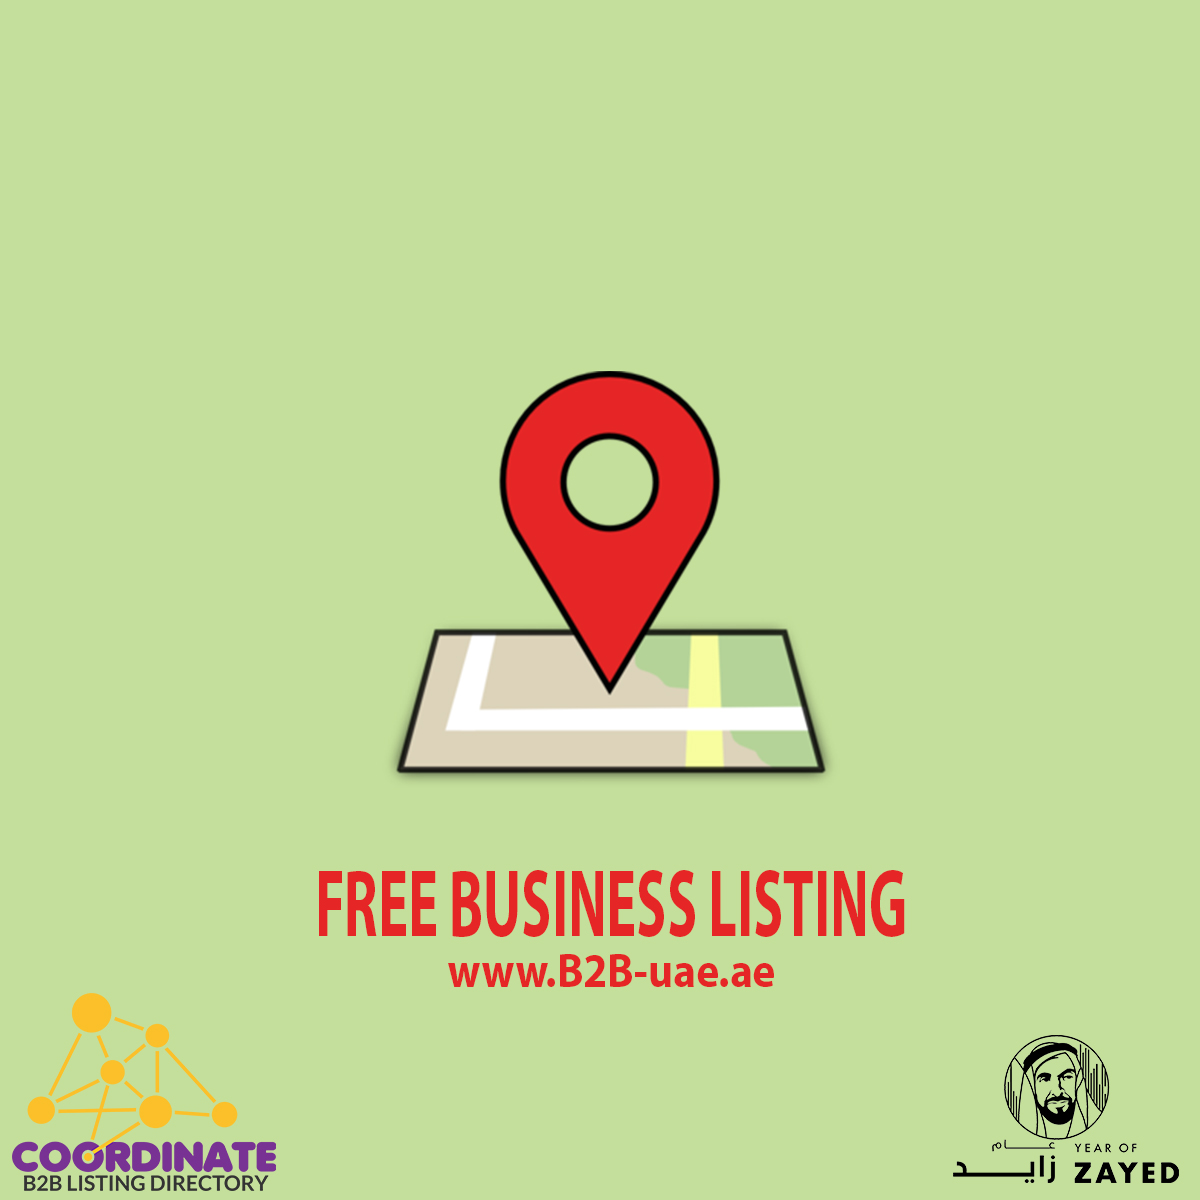 Advertising & Marketing Agency  FREE BUSINESS LISTING   FREE WEBSITE